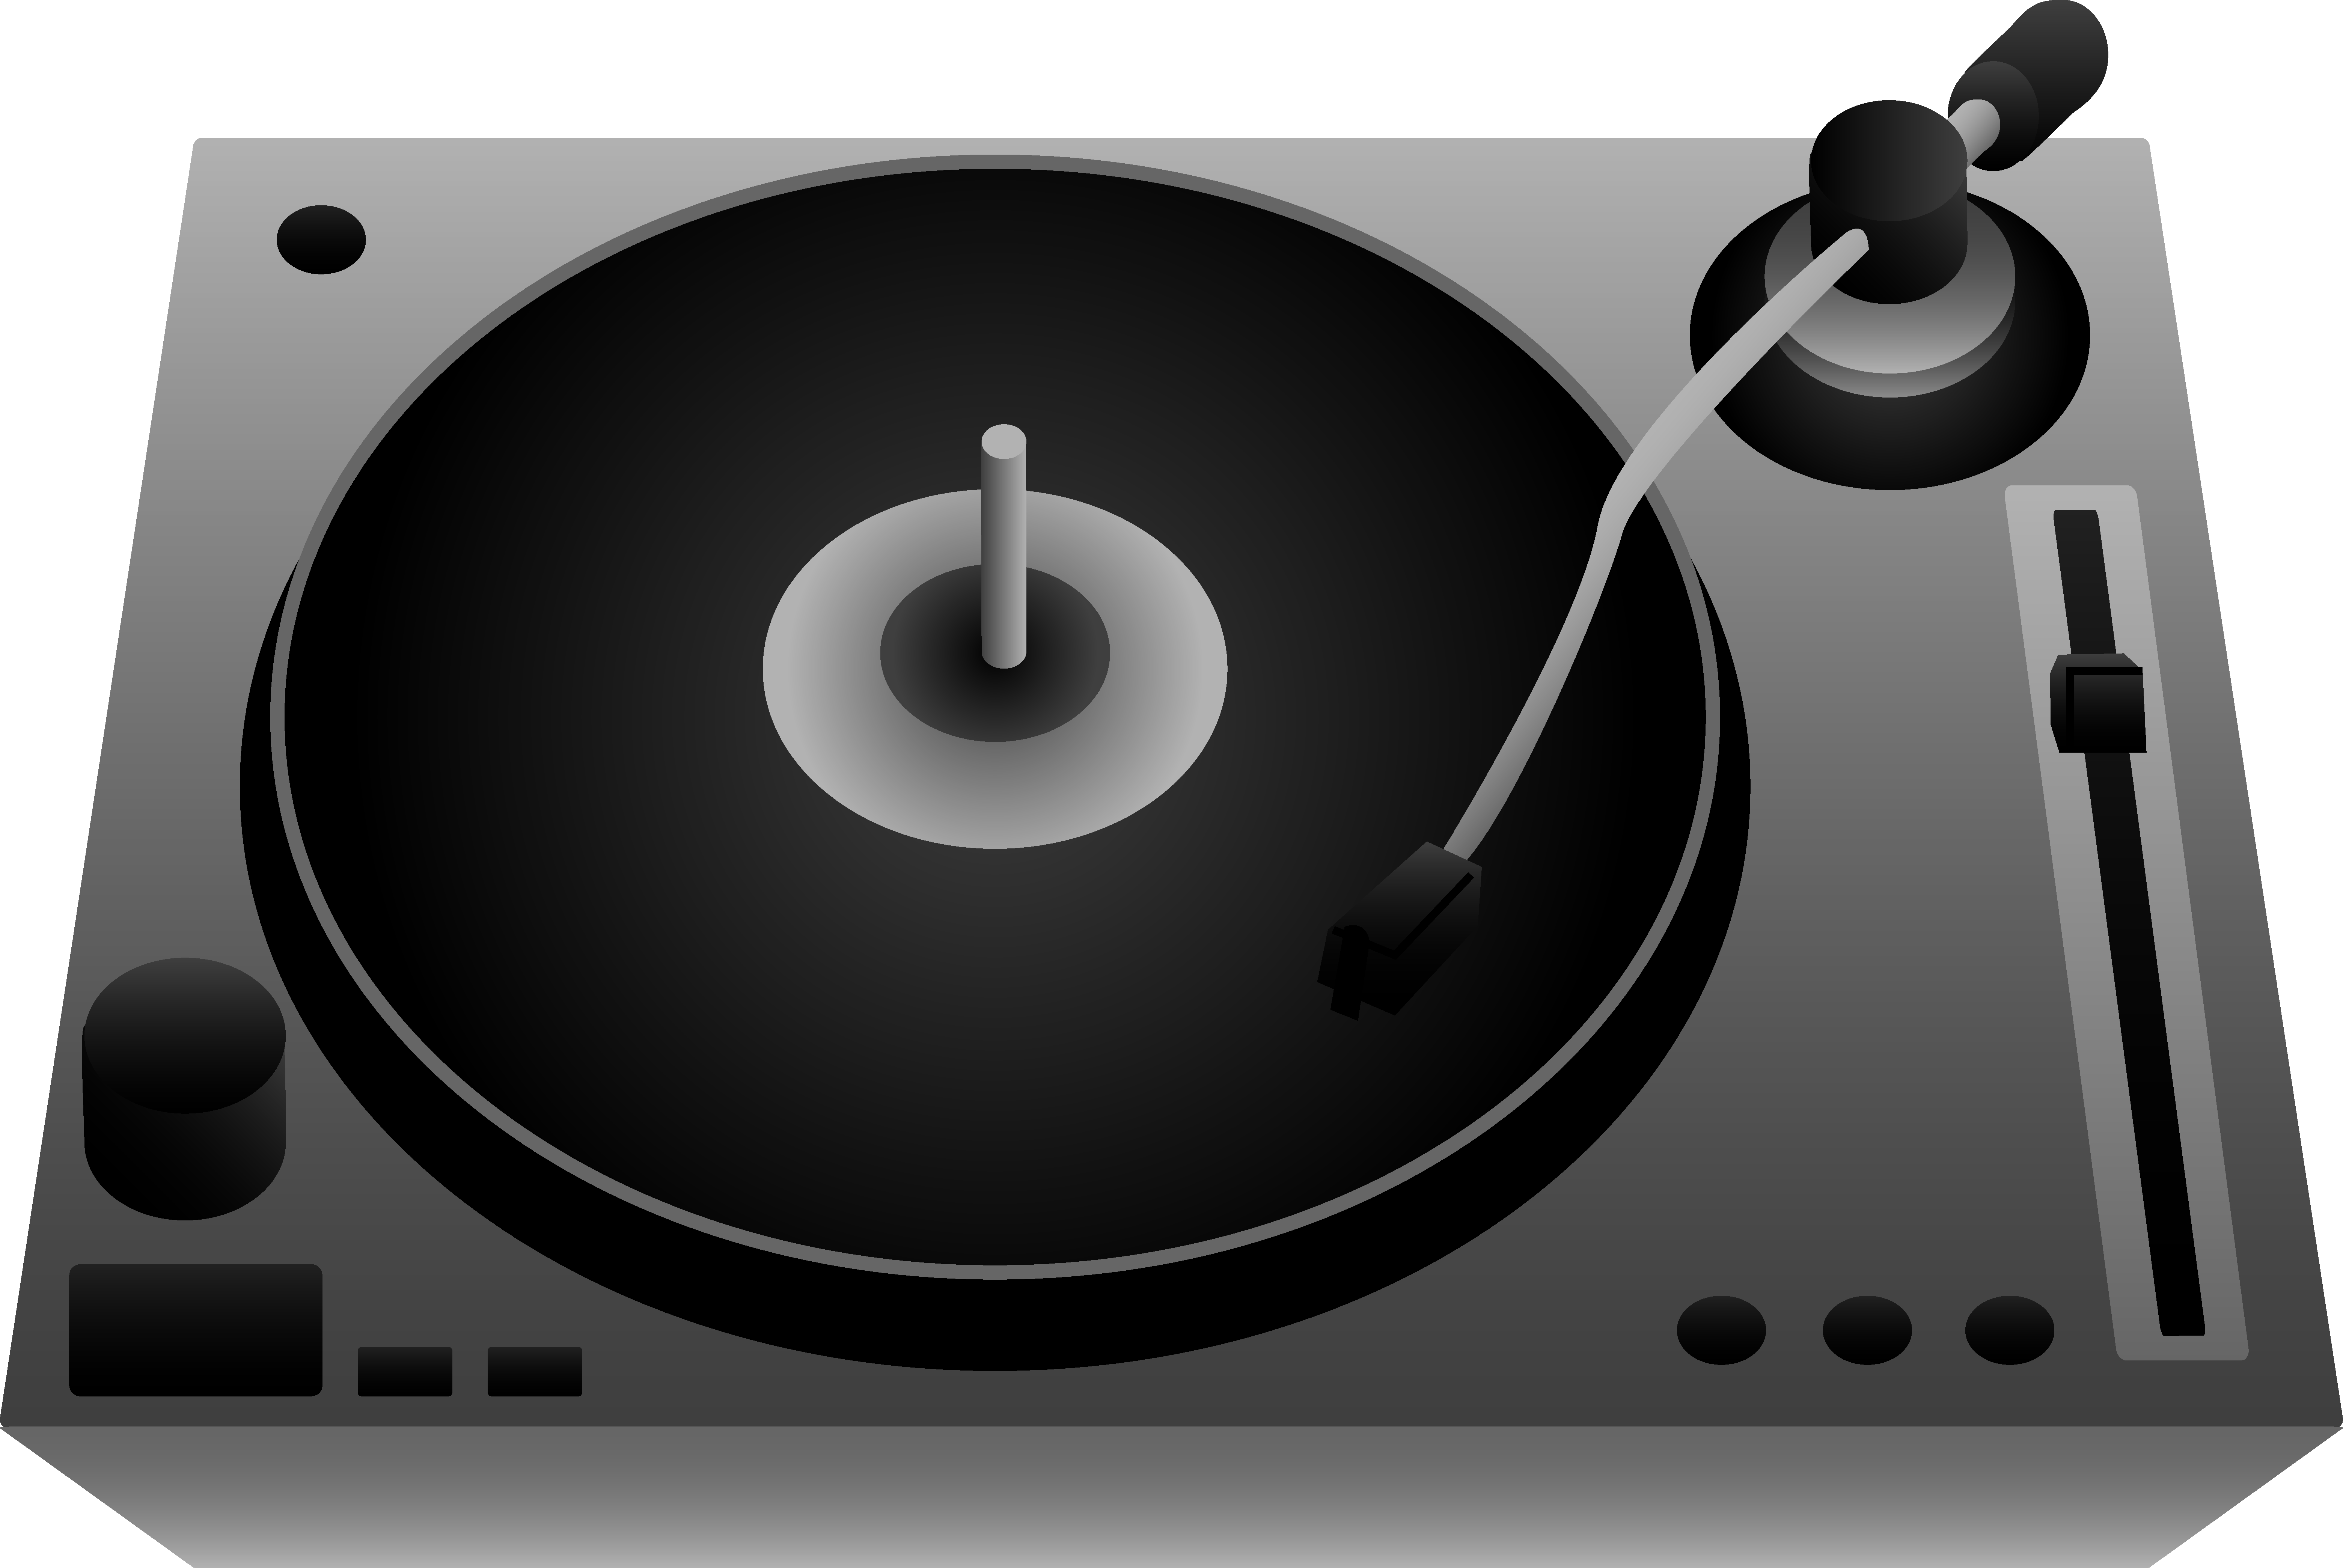 Record Player clipart transparent #14